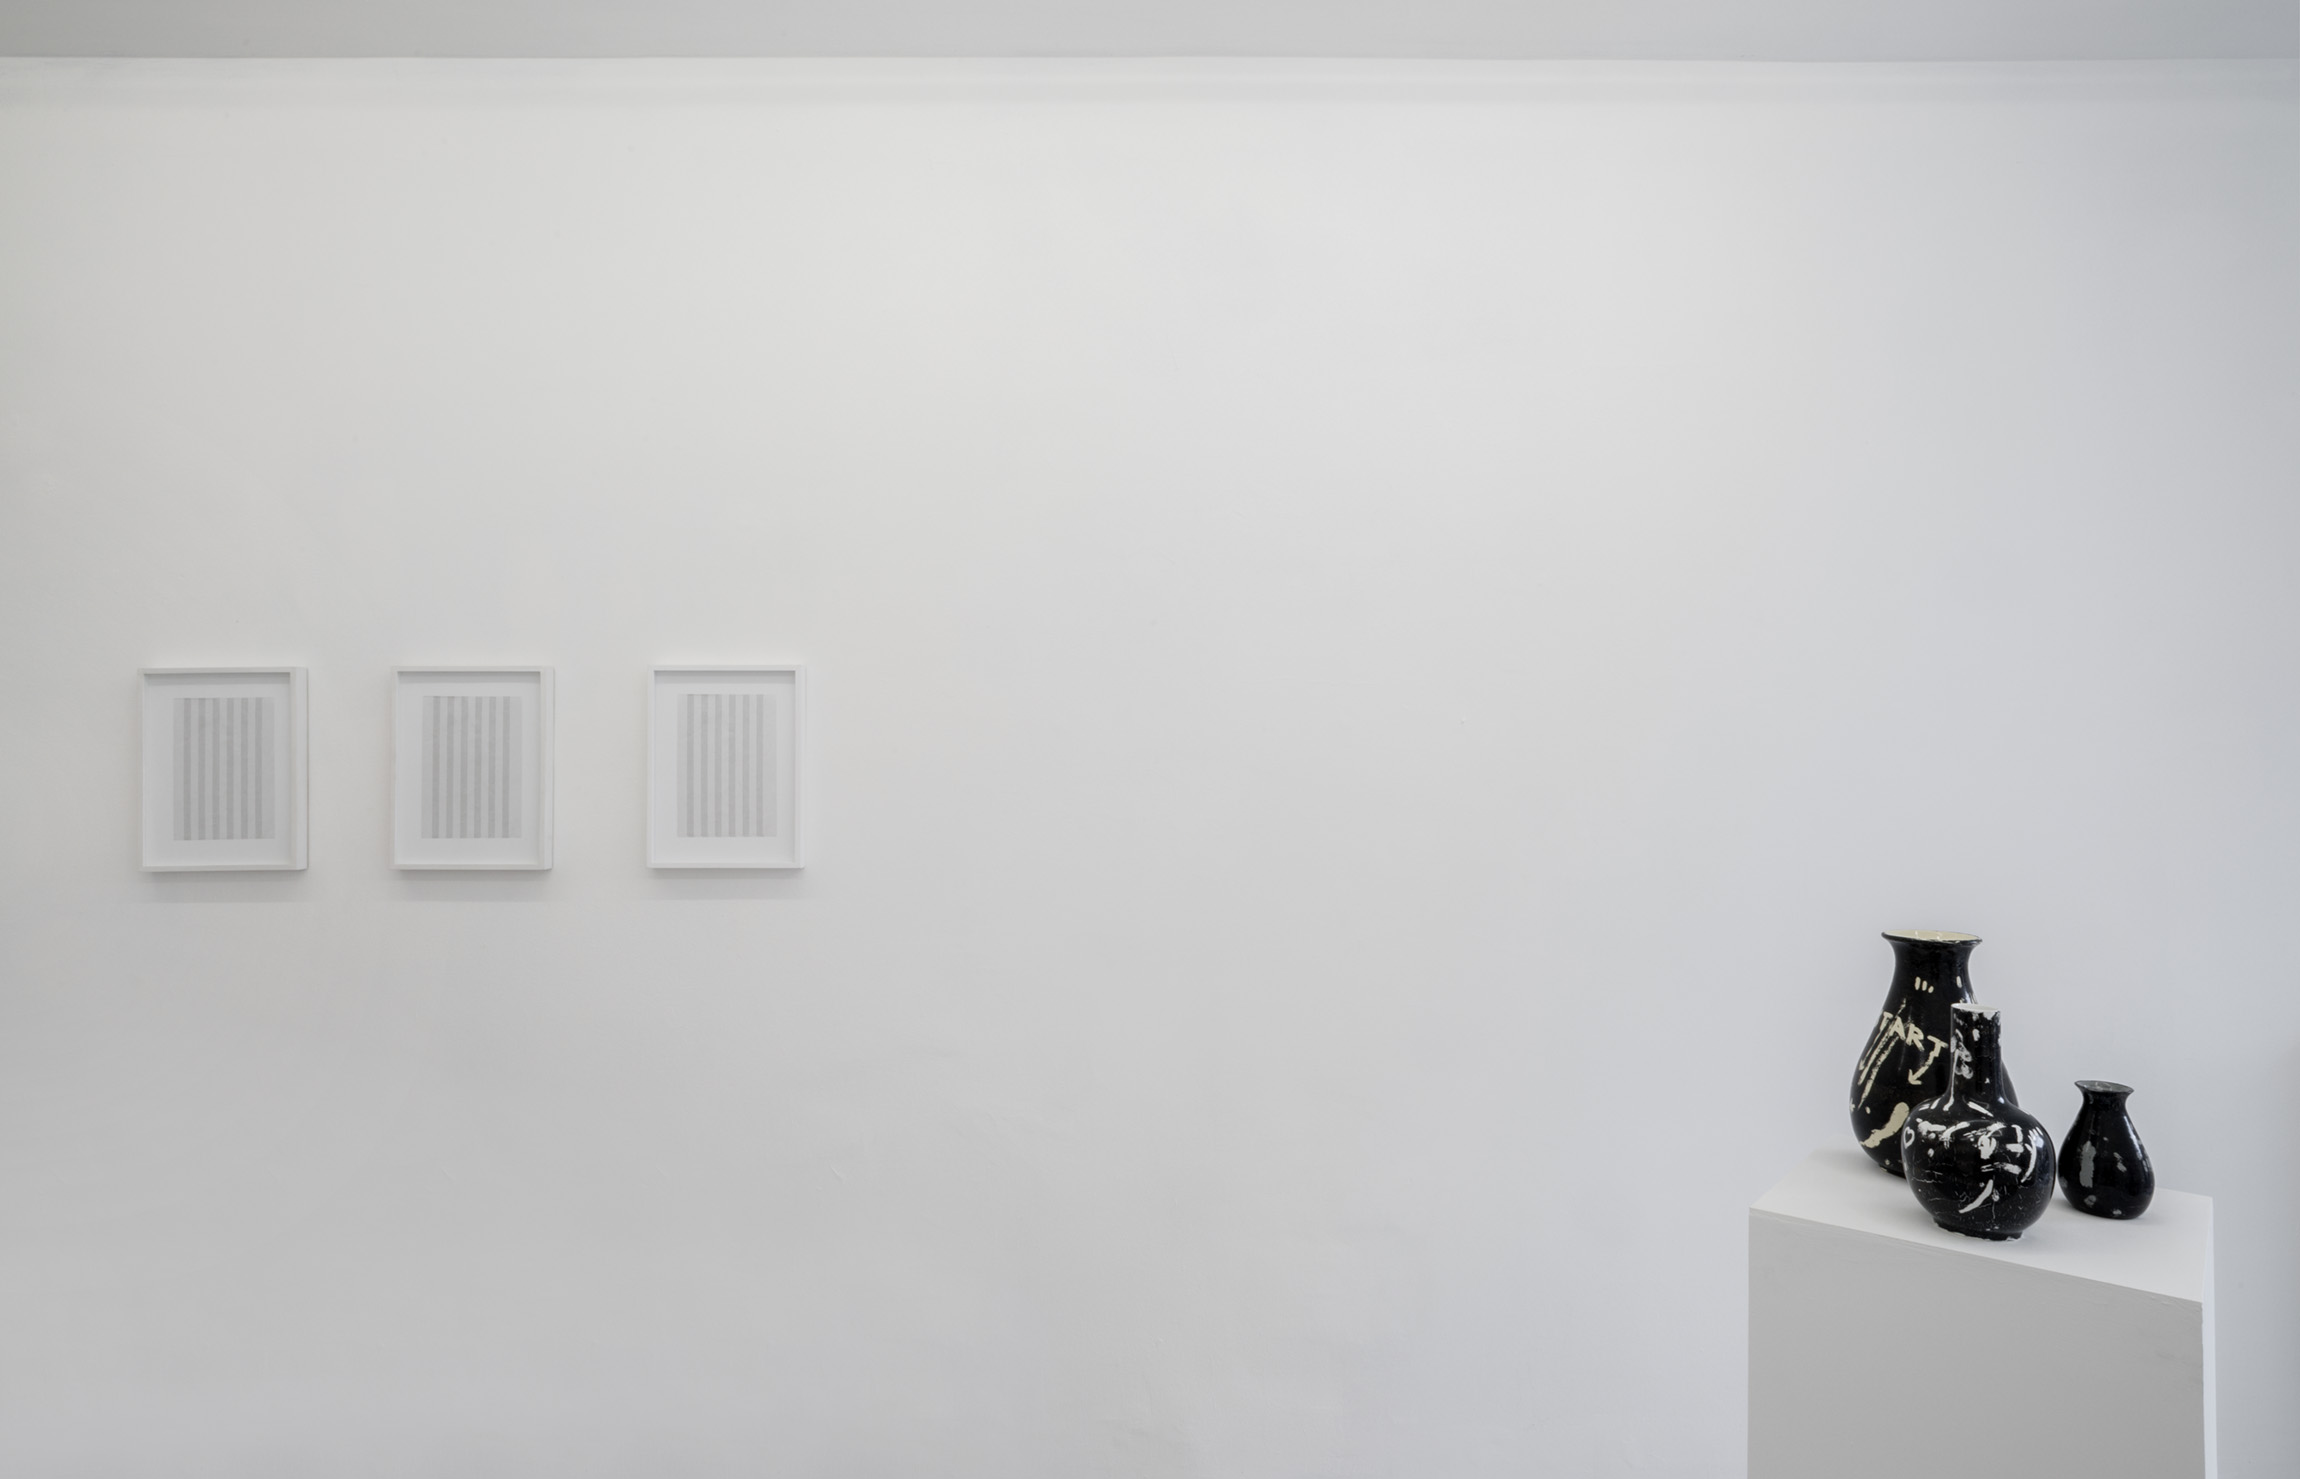 4. Gianluca Codeghini -Solo Noise- exhibition view at A+B gallery Brescia